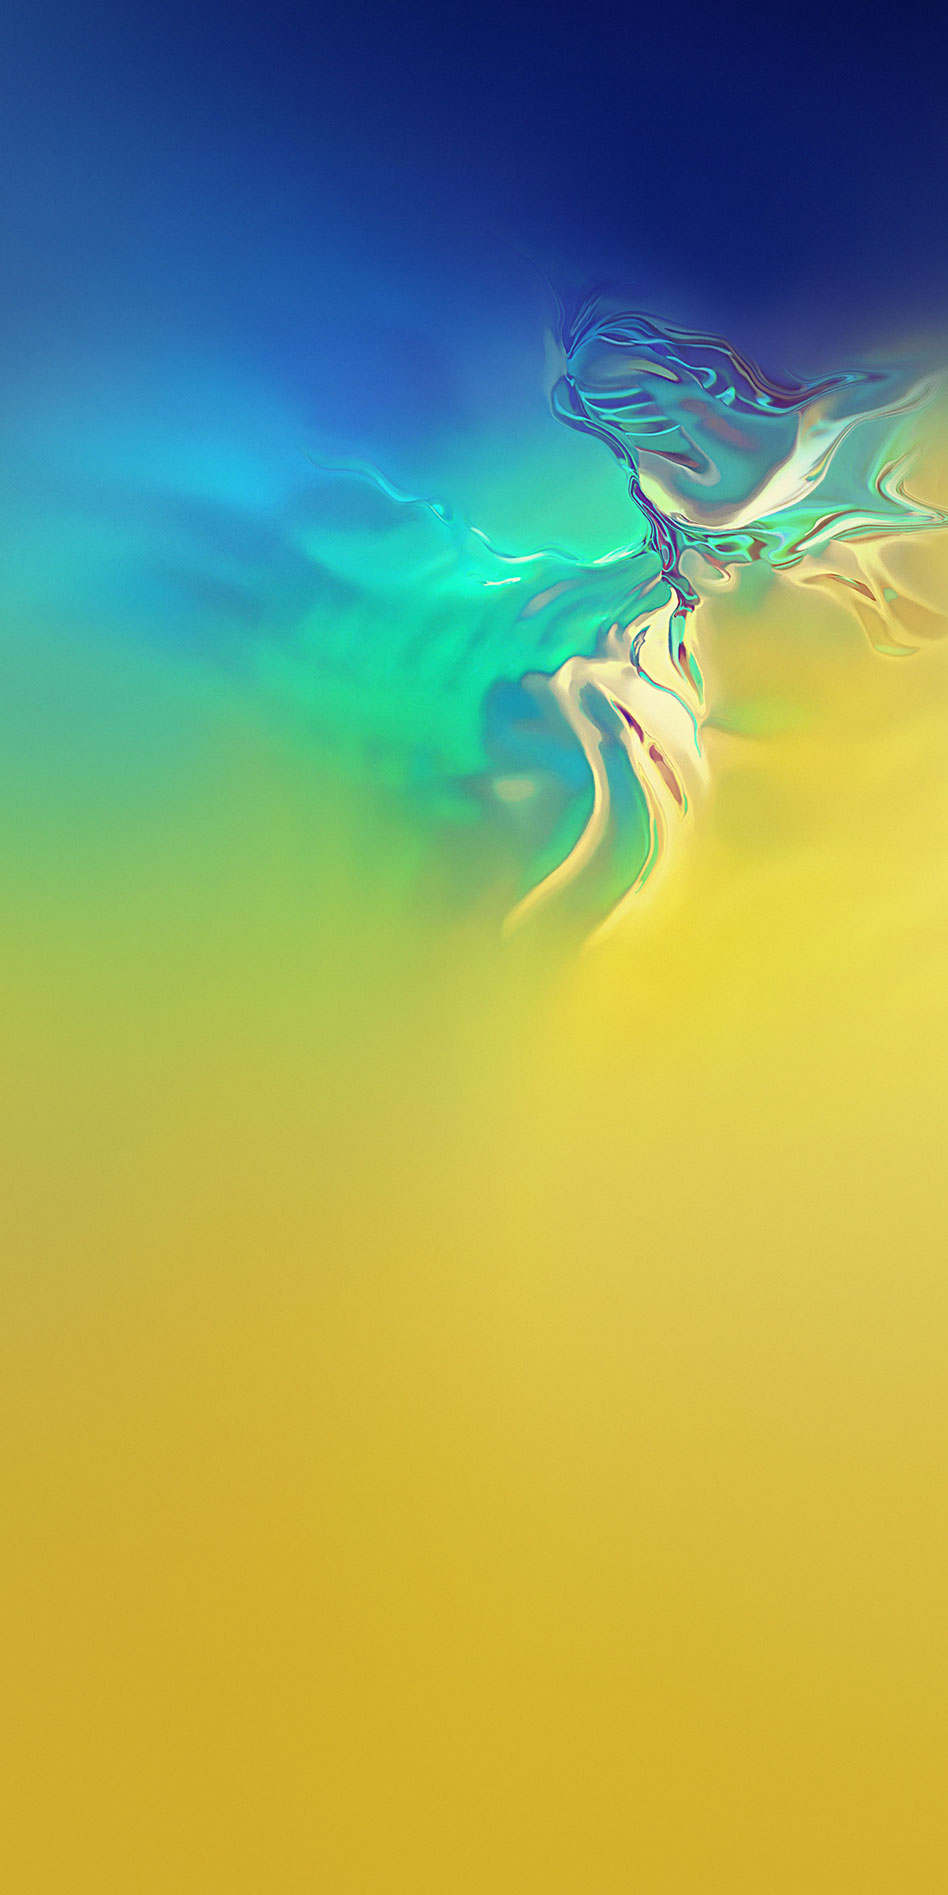 Samsung Galaxy S10 Yellow Wallpaper Iphone Xs Max 948x1895 Wallpaper Teahub Io